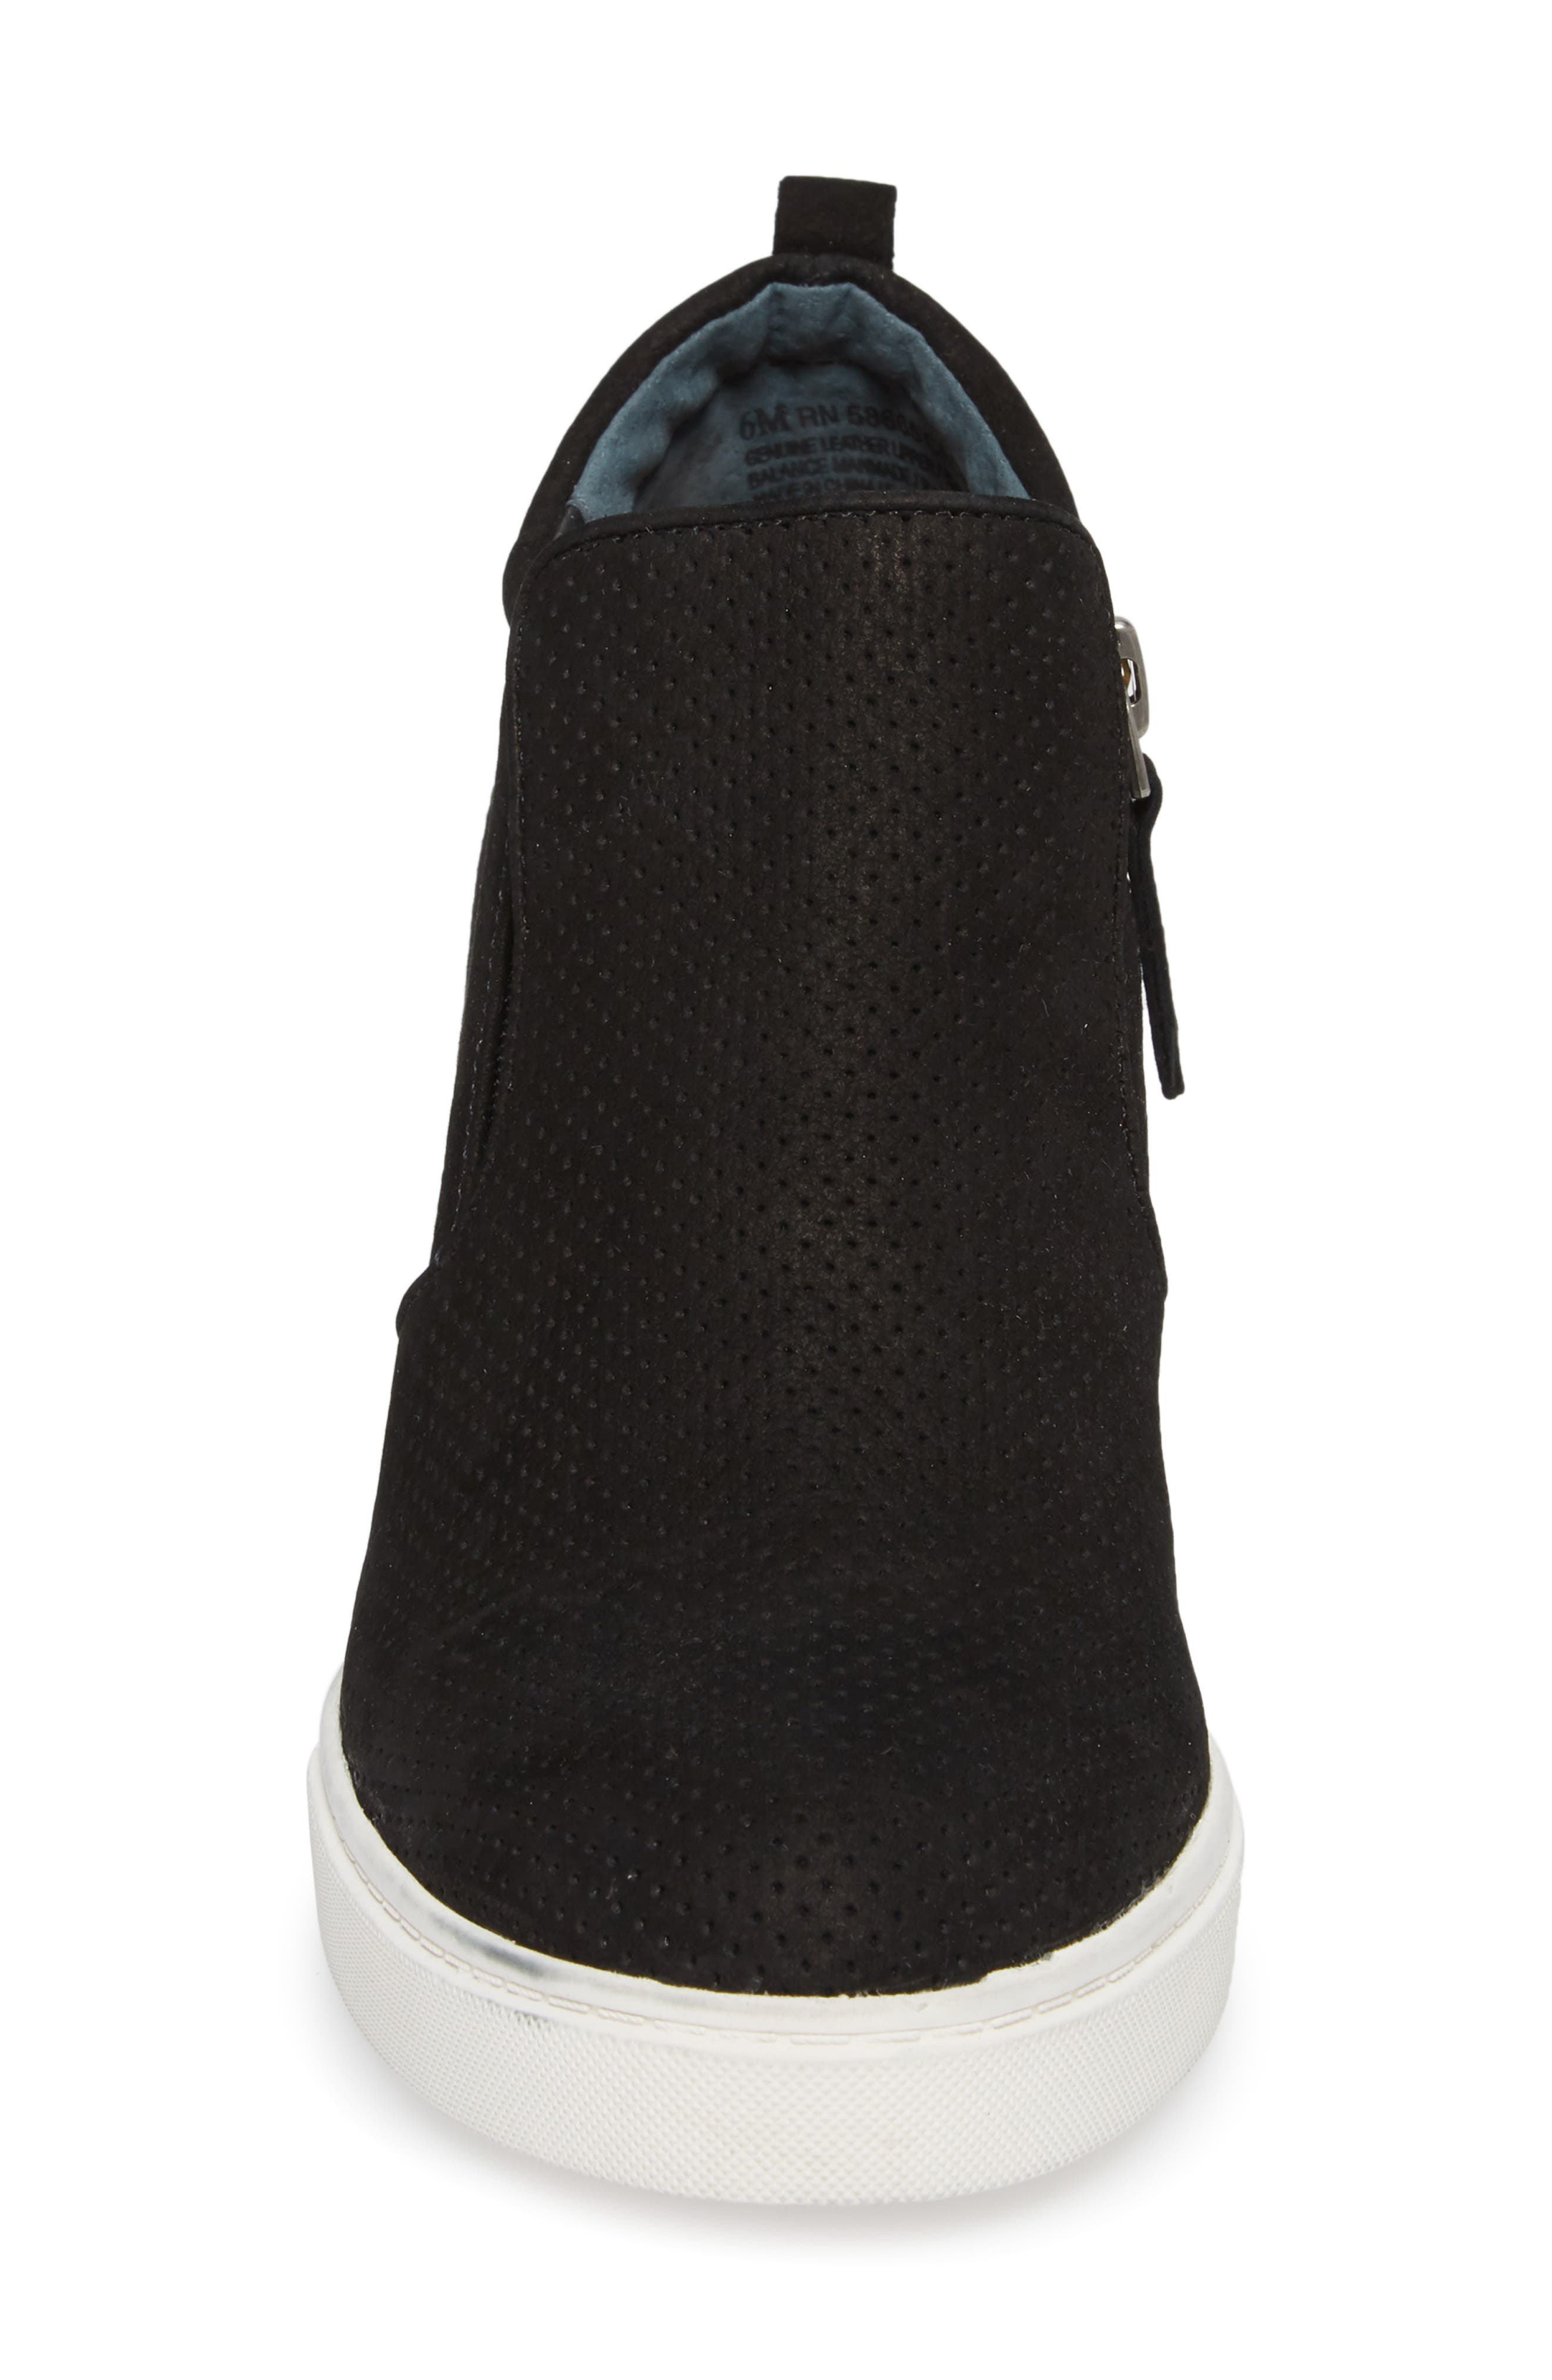 Aiden Wedge Sneaker,                             Alternate thumbnail 4, color,                             BLACK PERFORATED LEATHER